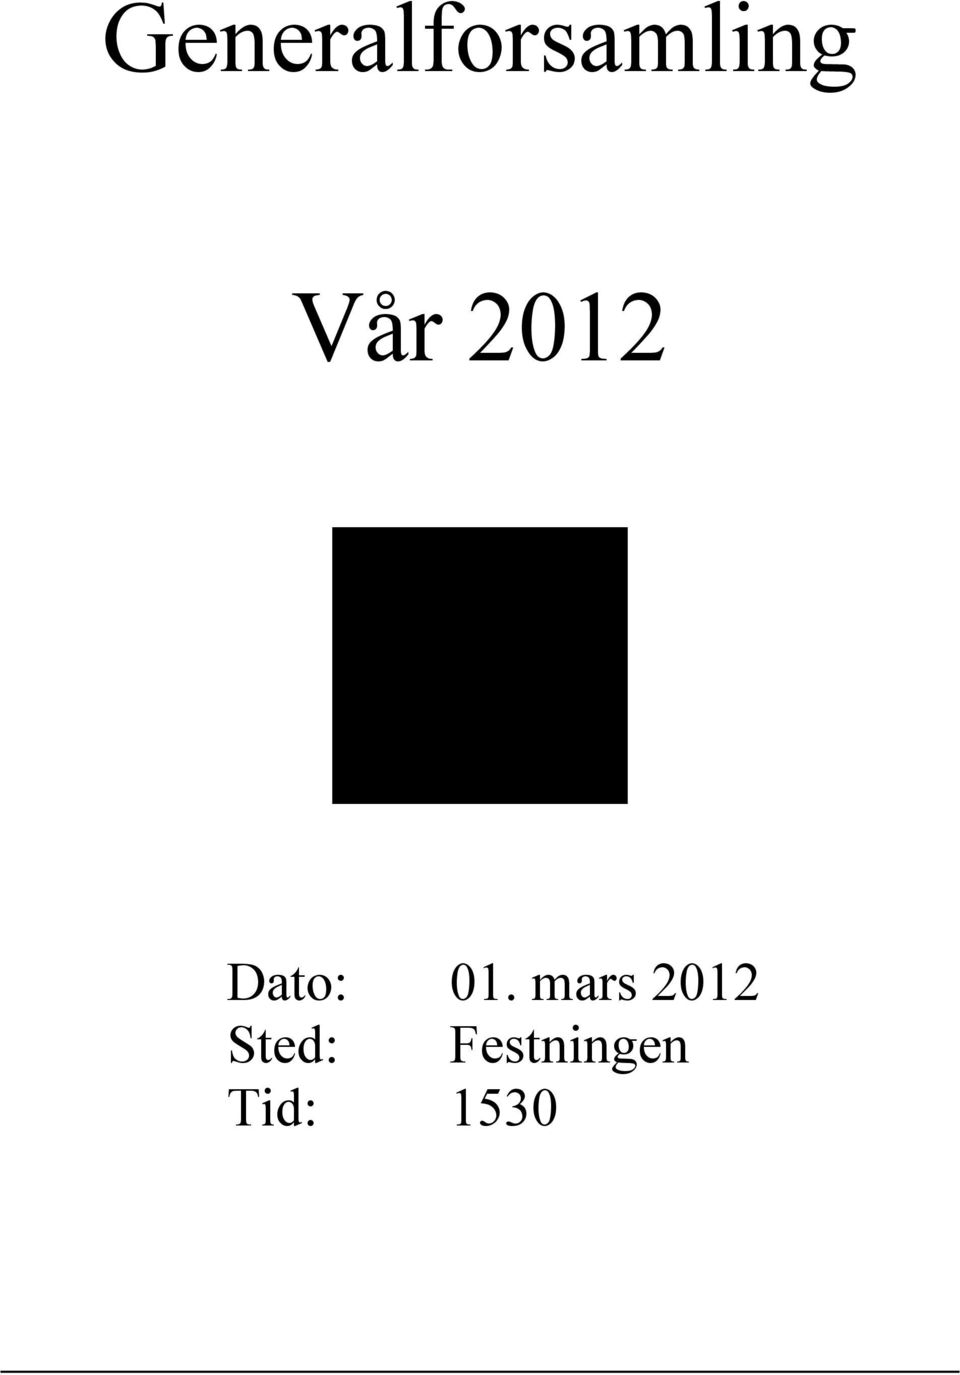 mars 2012 Sted: